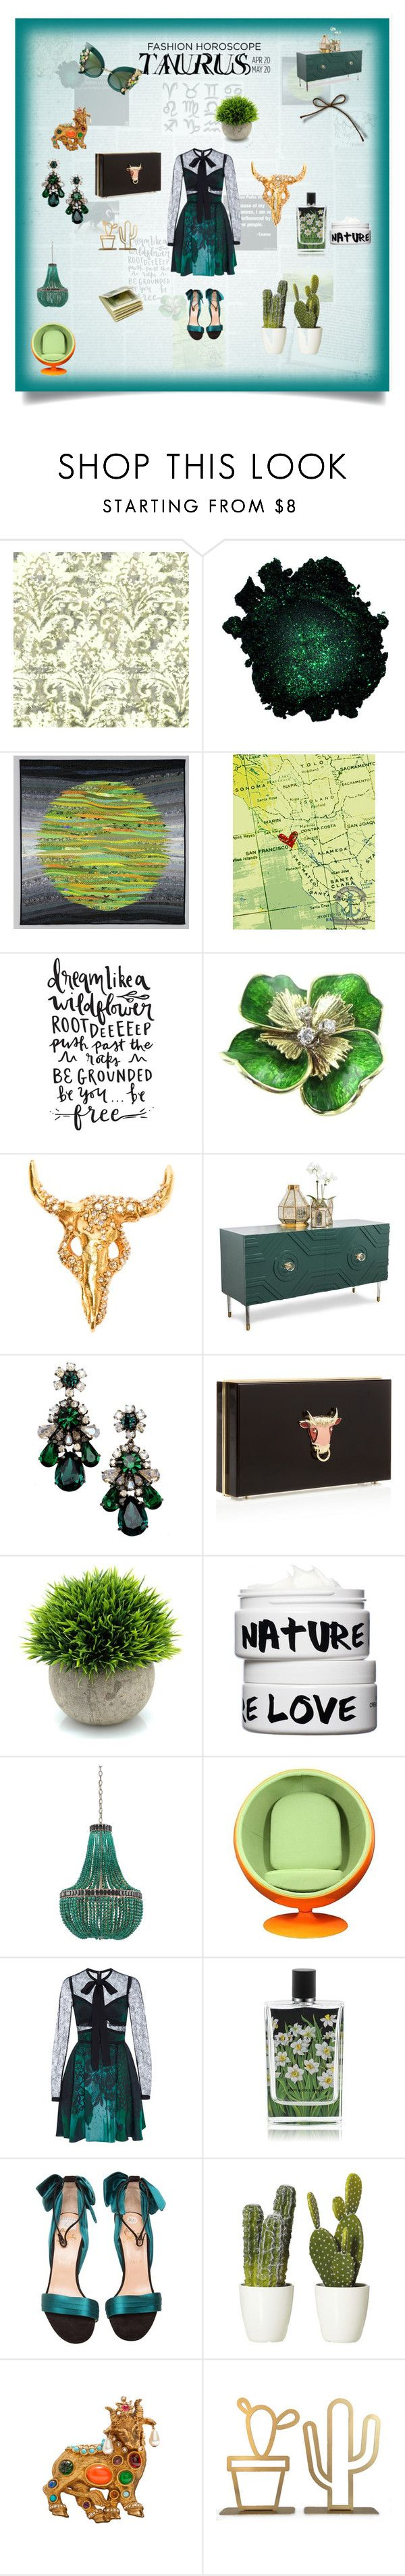 """""""Taurus"""" by trinity-reece on Polyvore featuring Christian Lacroix, Shourouk, Charlotte Olympia, Nature Girl, Currey & Company, Elie Saab, Nest Fragrances, Christian Louboutin and Dolce&Gabbana"""